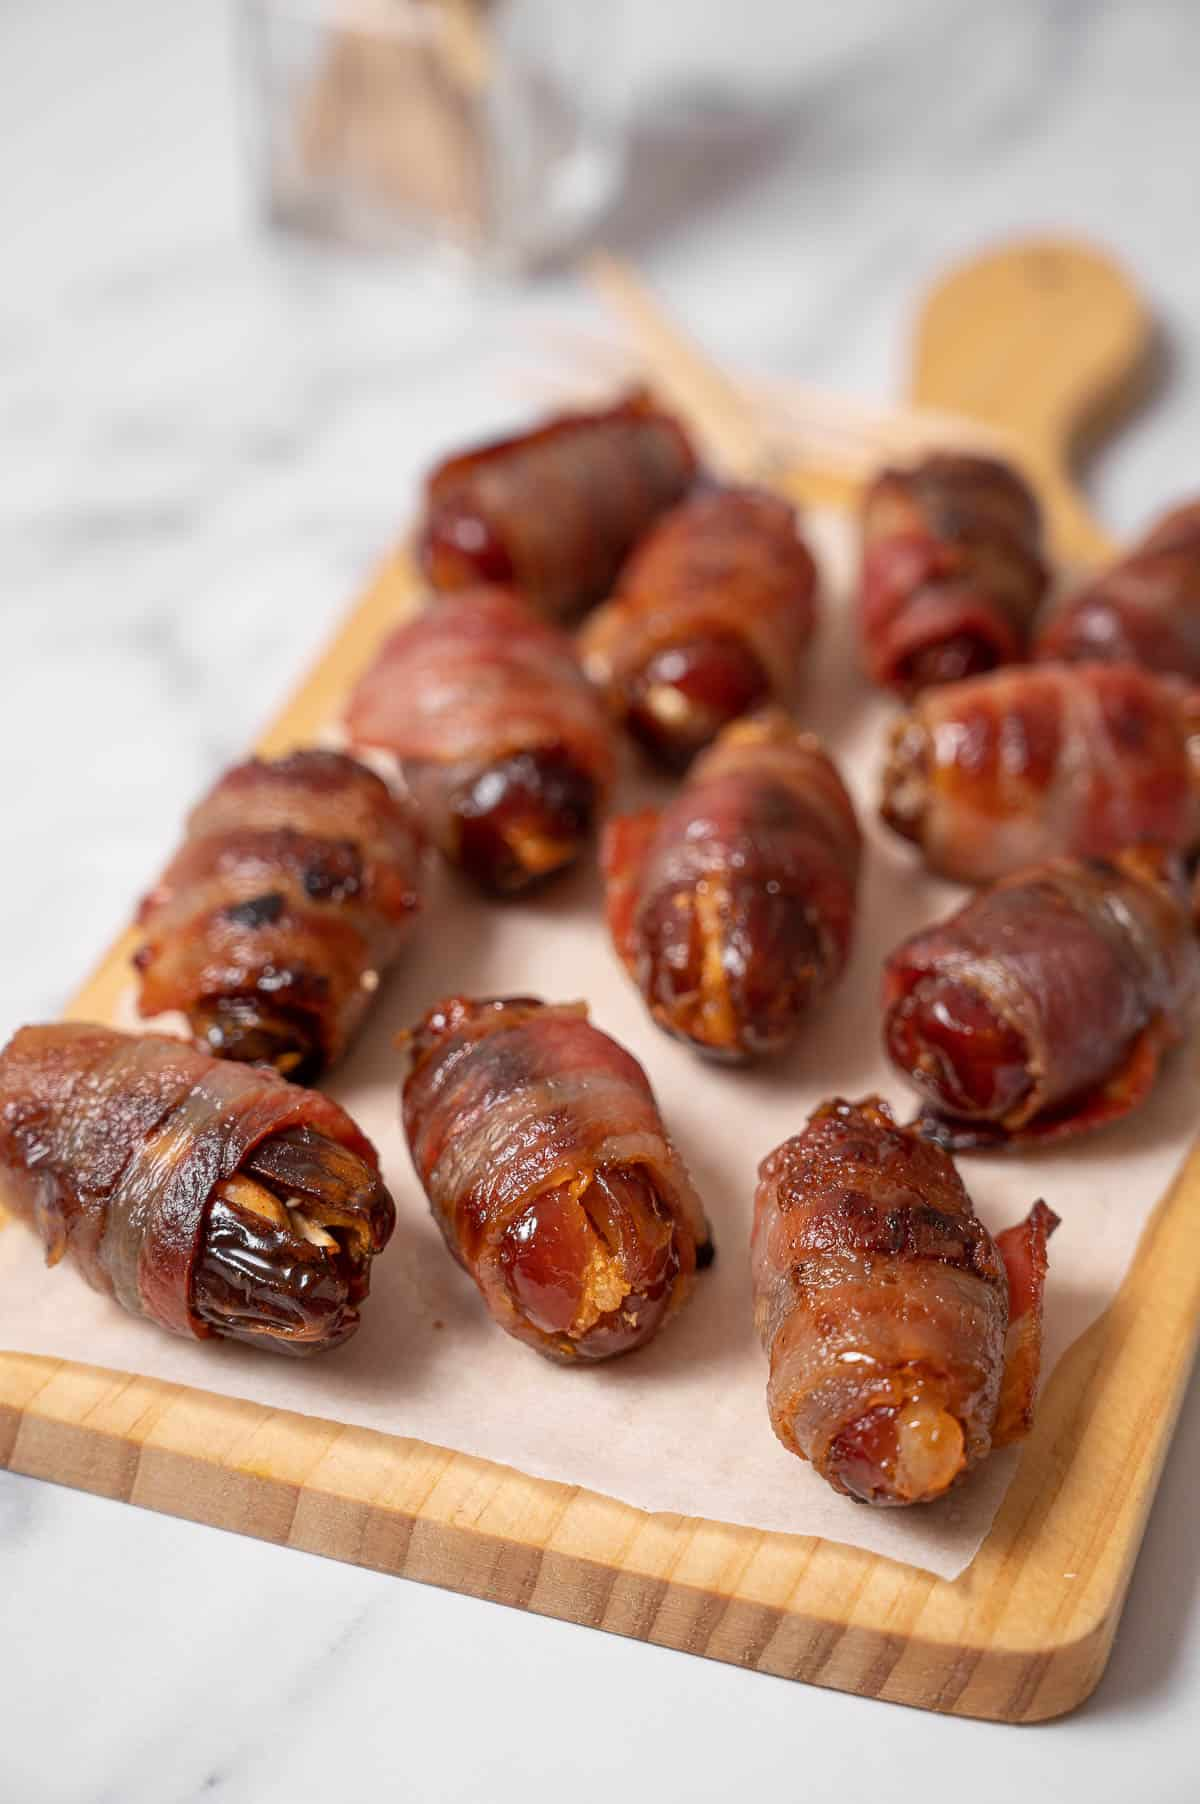 Bacon wrapped dates on a wooden platter.